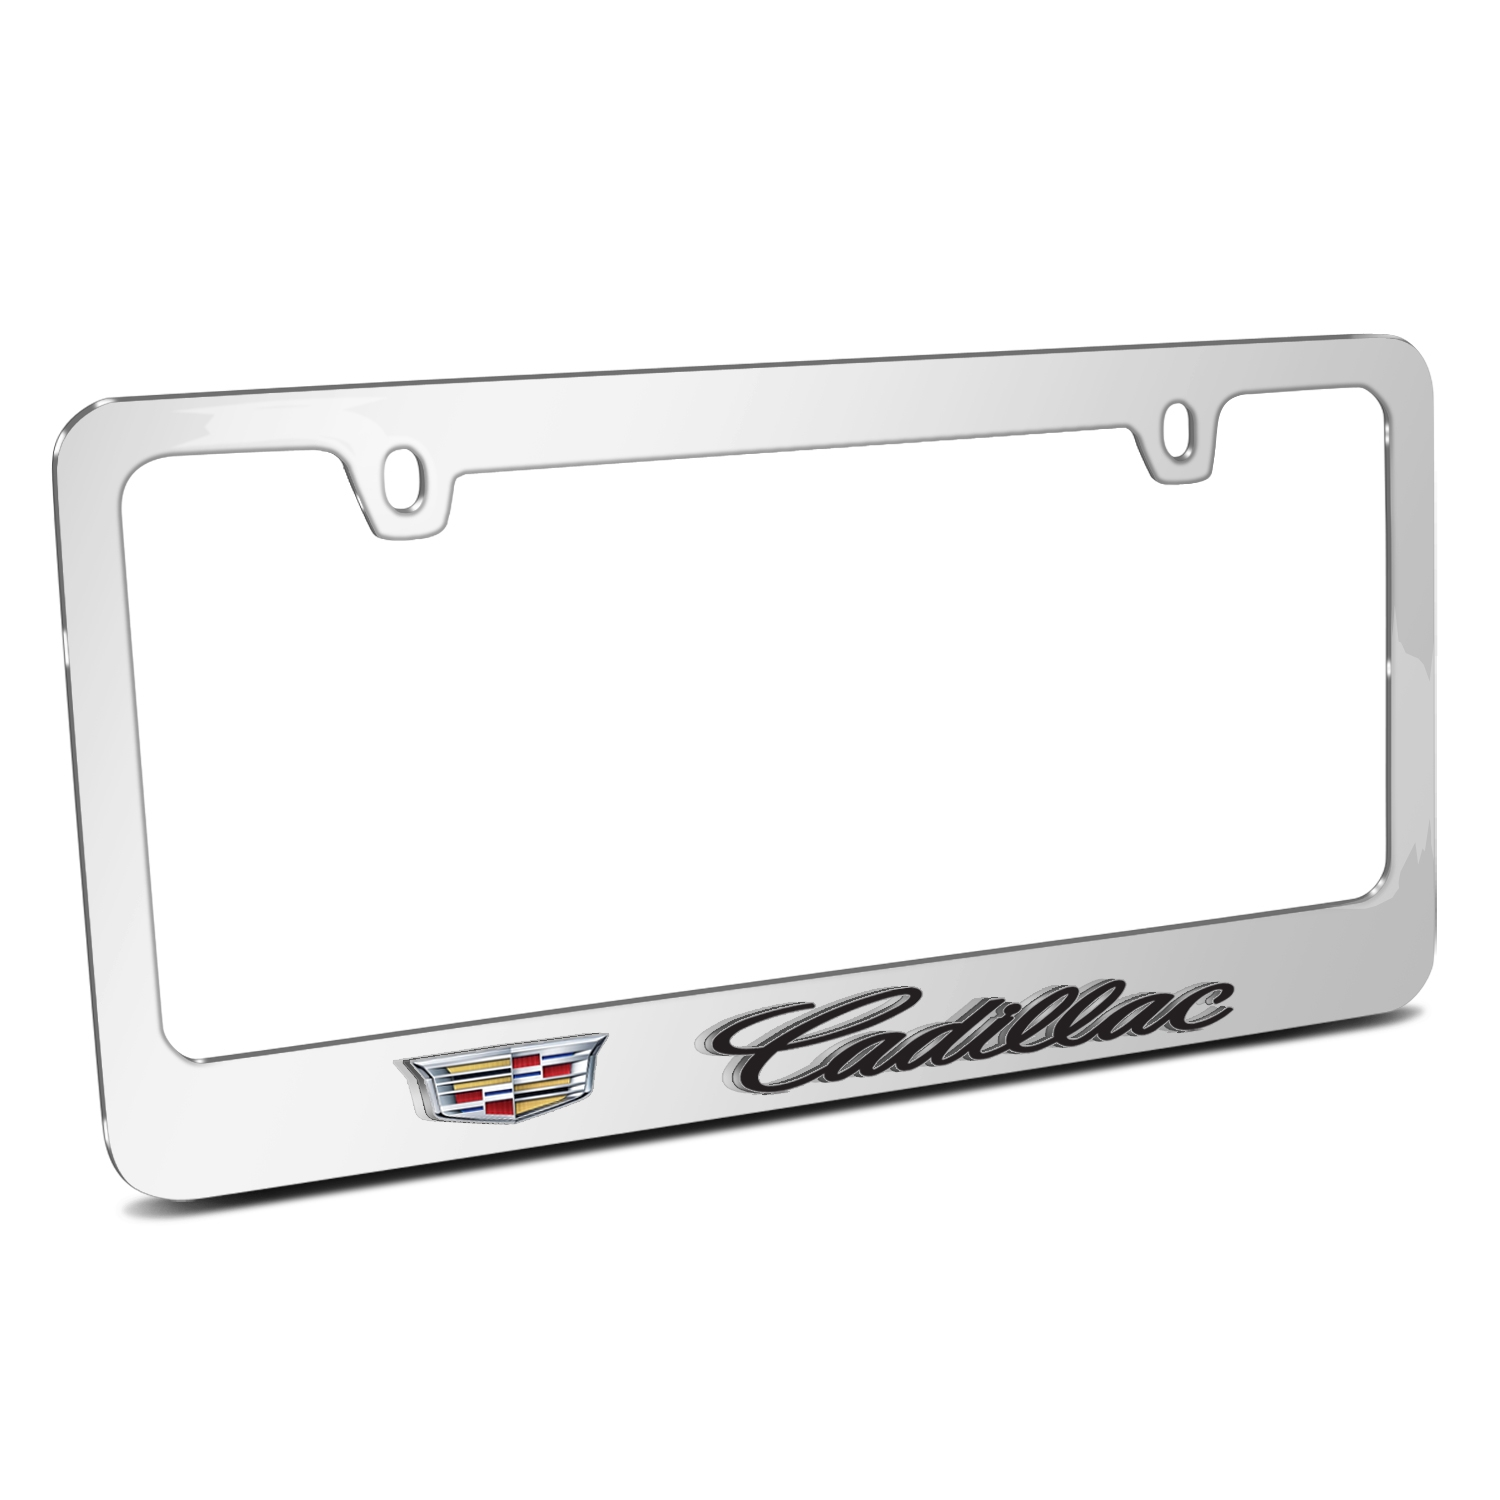 Cadillac 3D Embossed Crest Logo Mirror Chrome Metal License Plate Frame